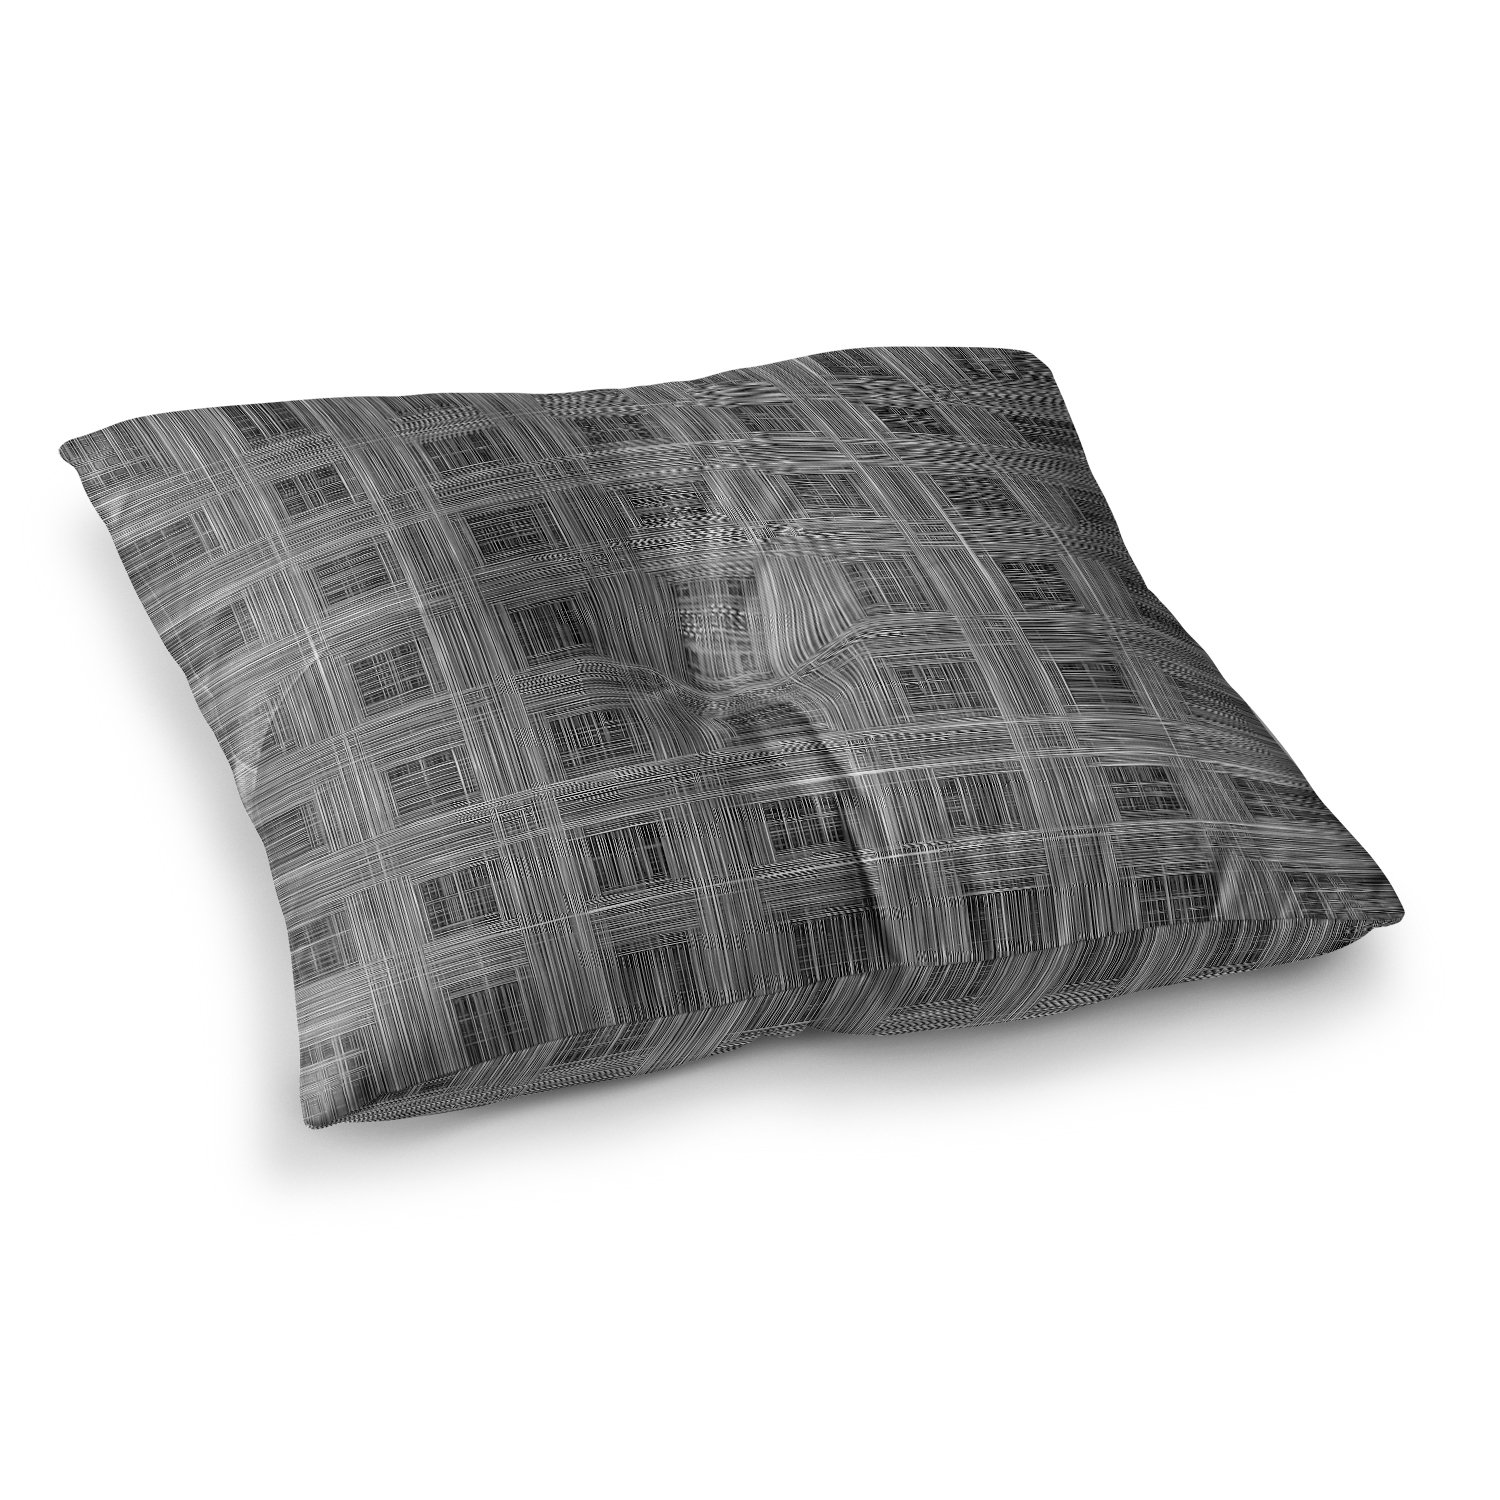 Kess InHouse Bruce Stanfield Ambient 10' Gray Pattern, 23' x 23' Square Floor Pillow